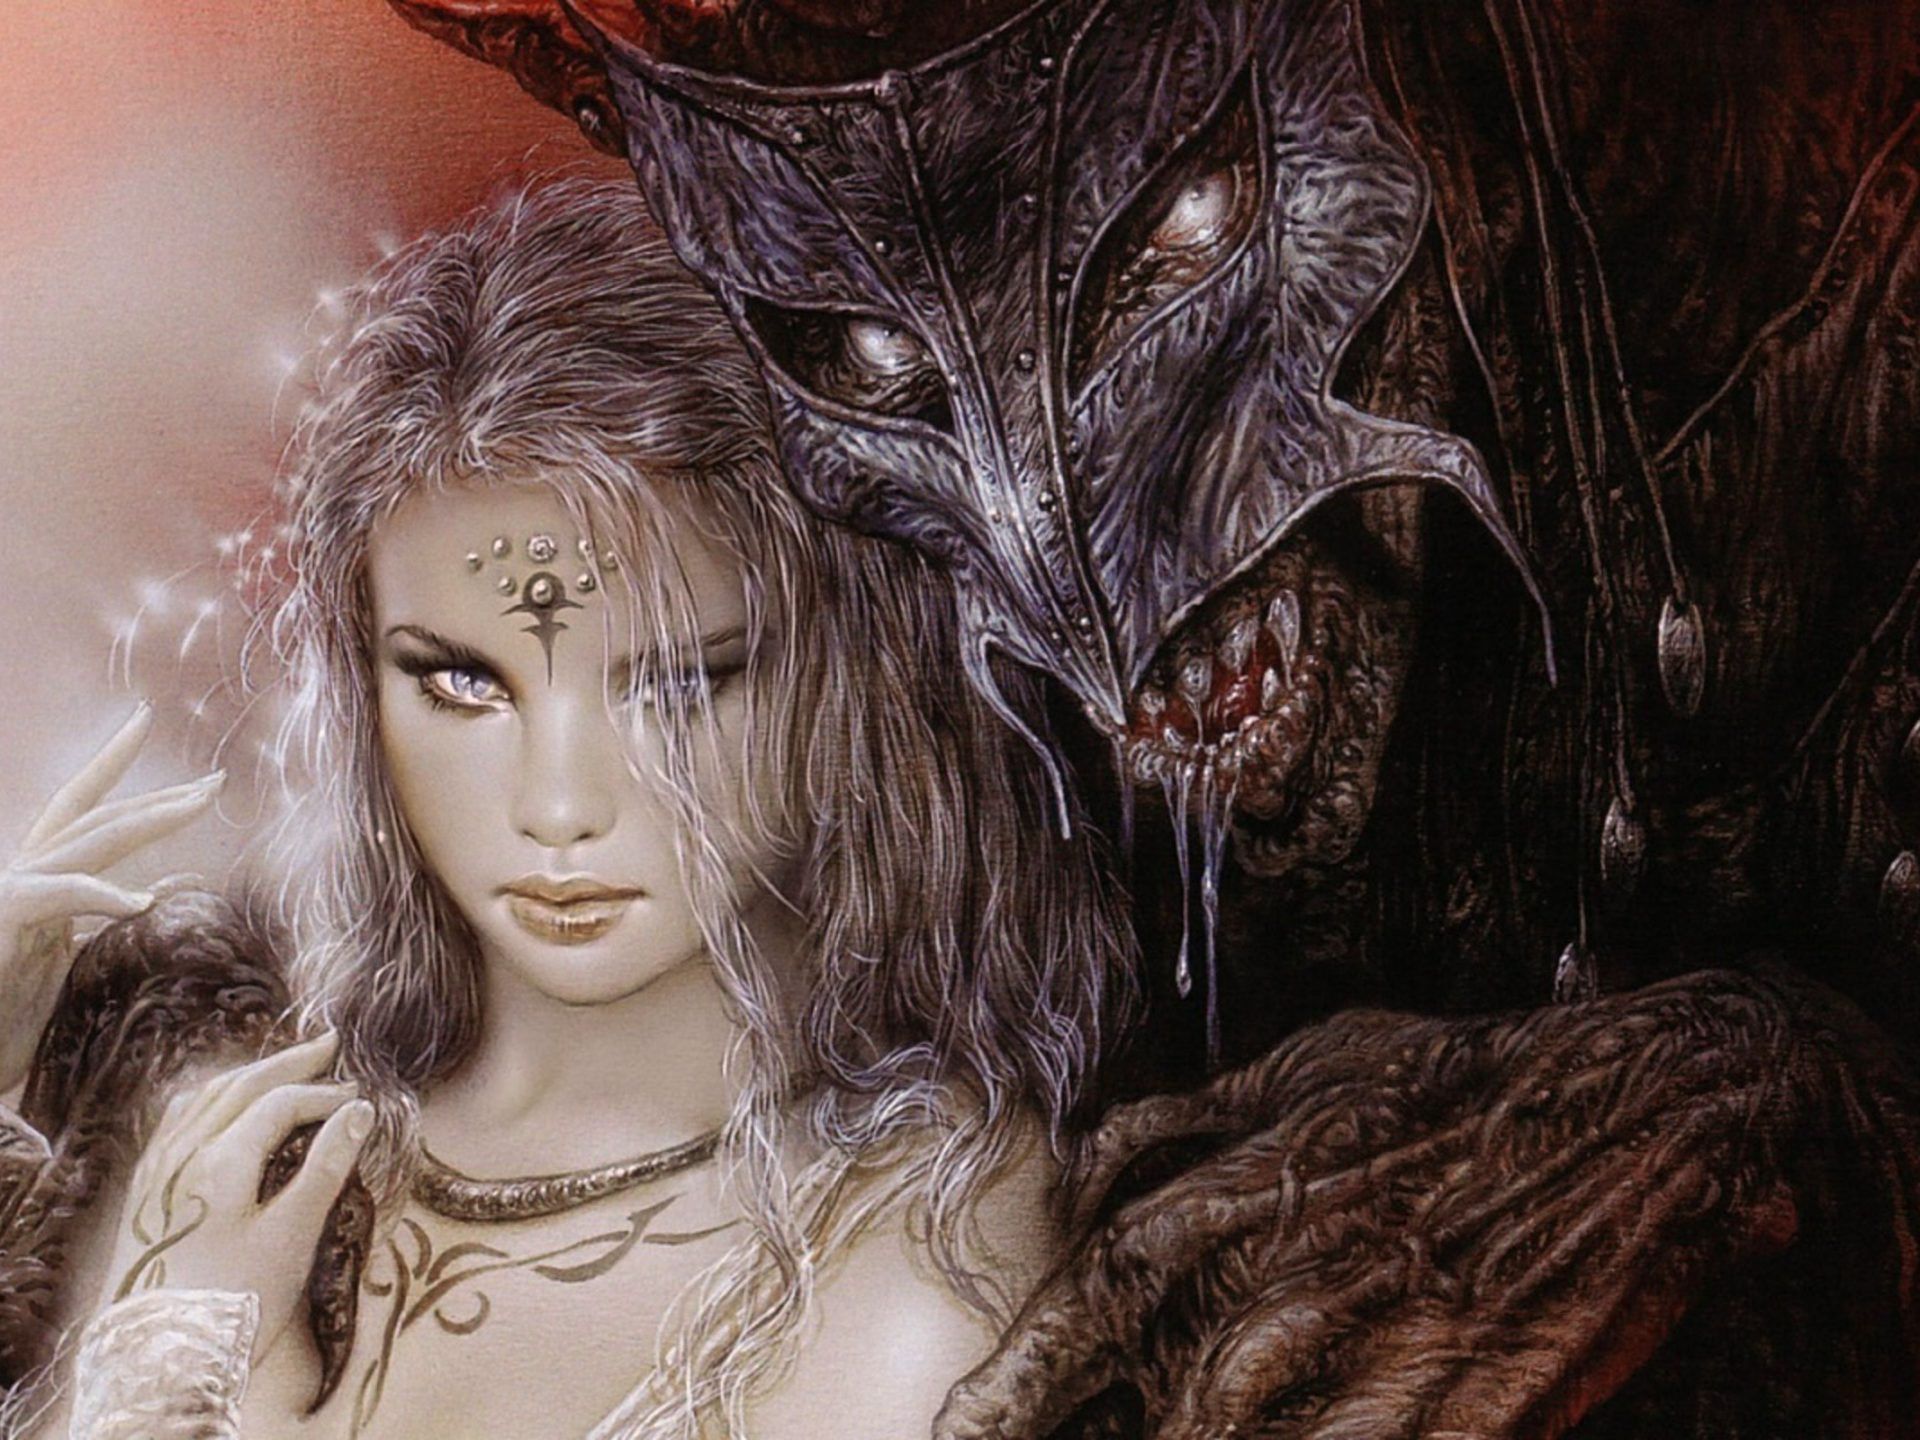 Gothic Vampire Girl Wallpaper Luis Royo Fantasy Dark Horror Demon Women Art Mask Monster